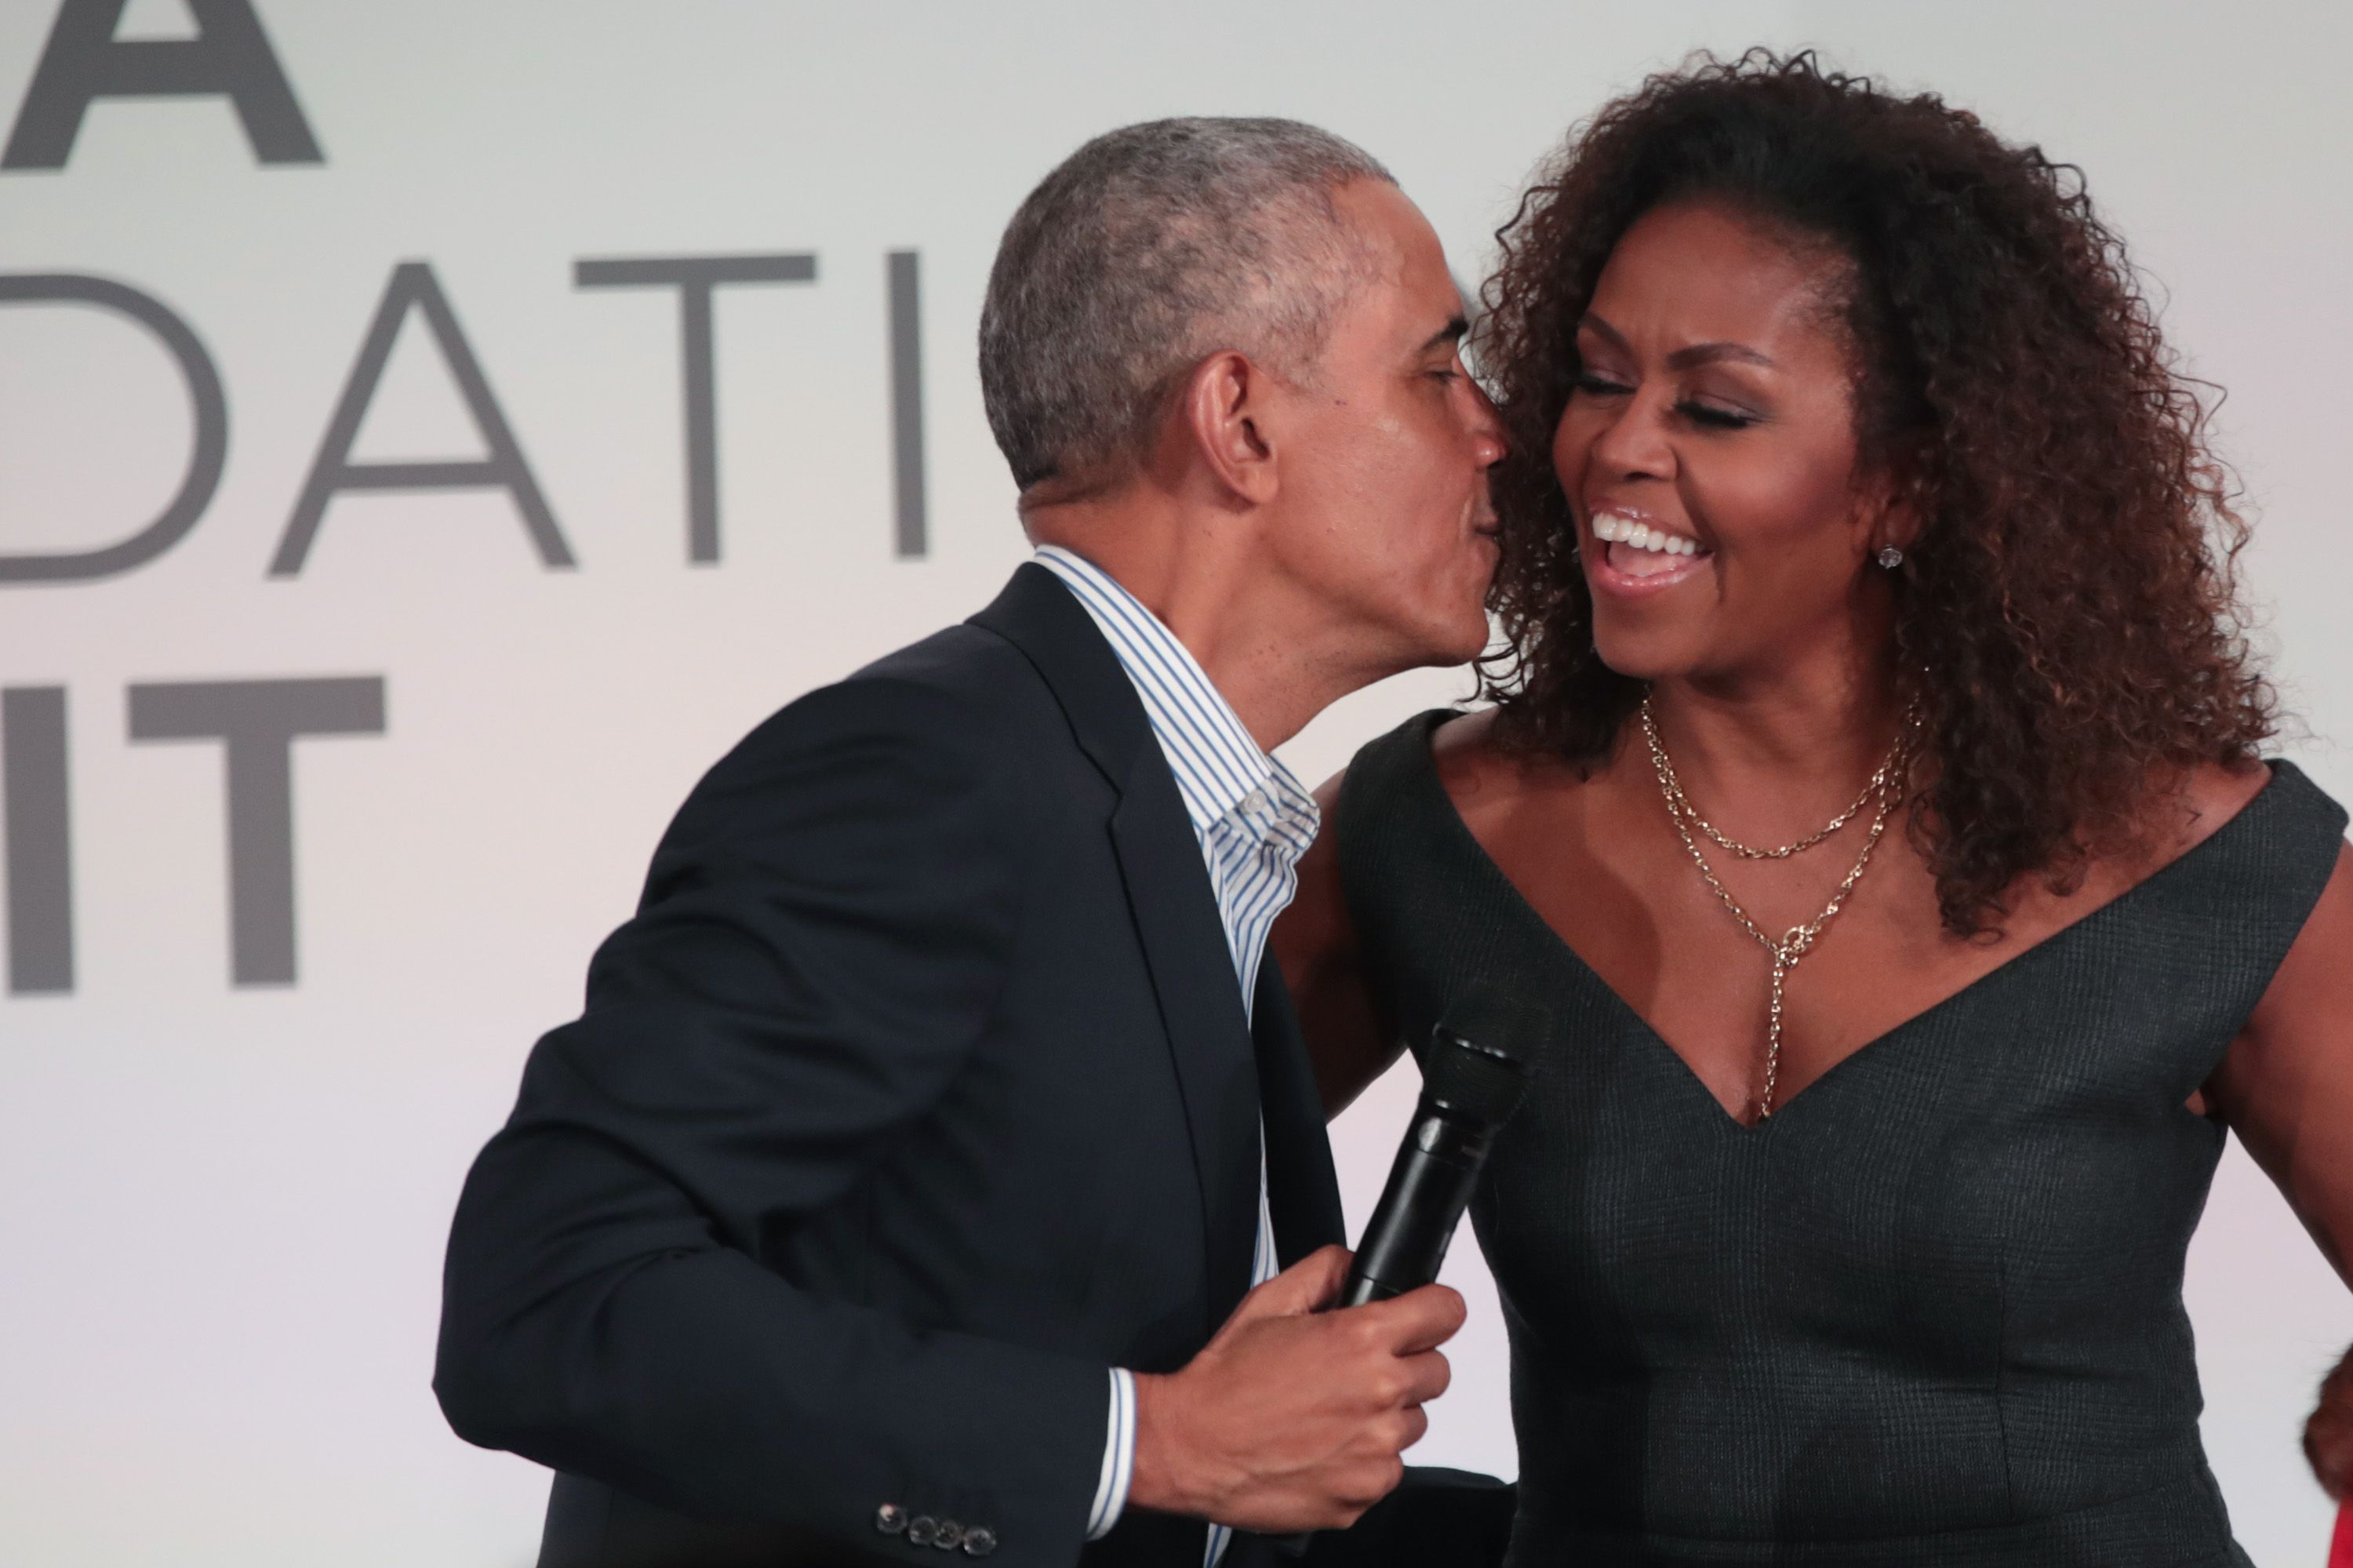 Obama having sex with his wife